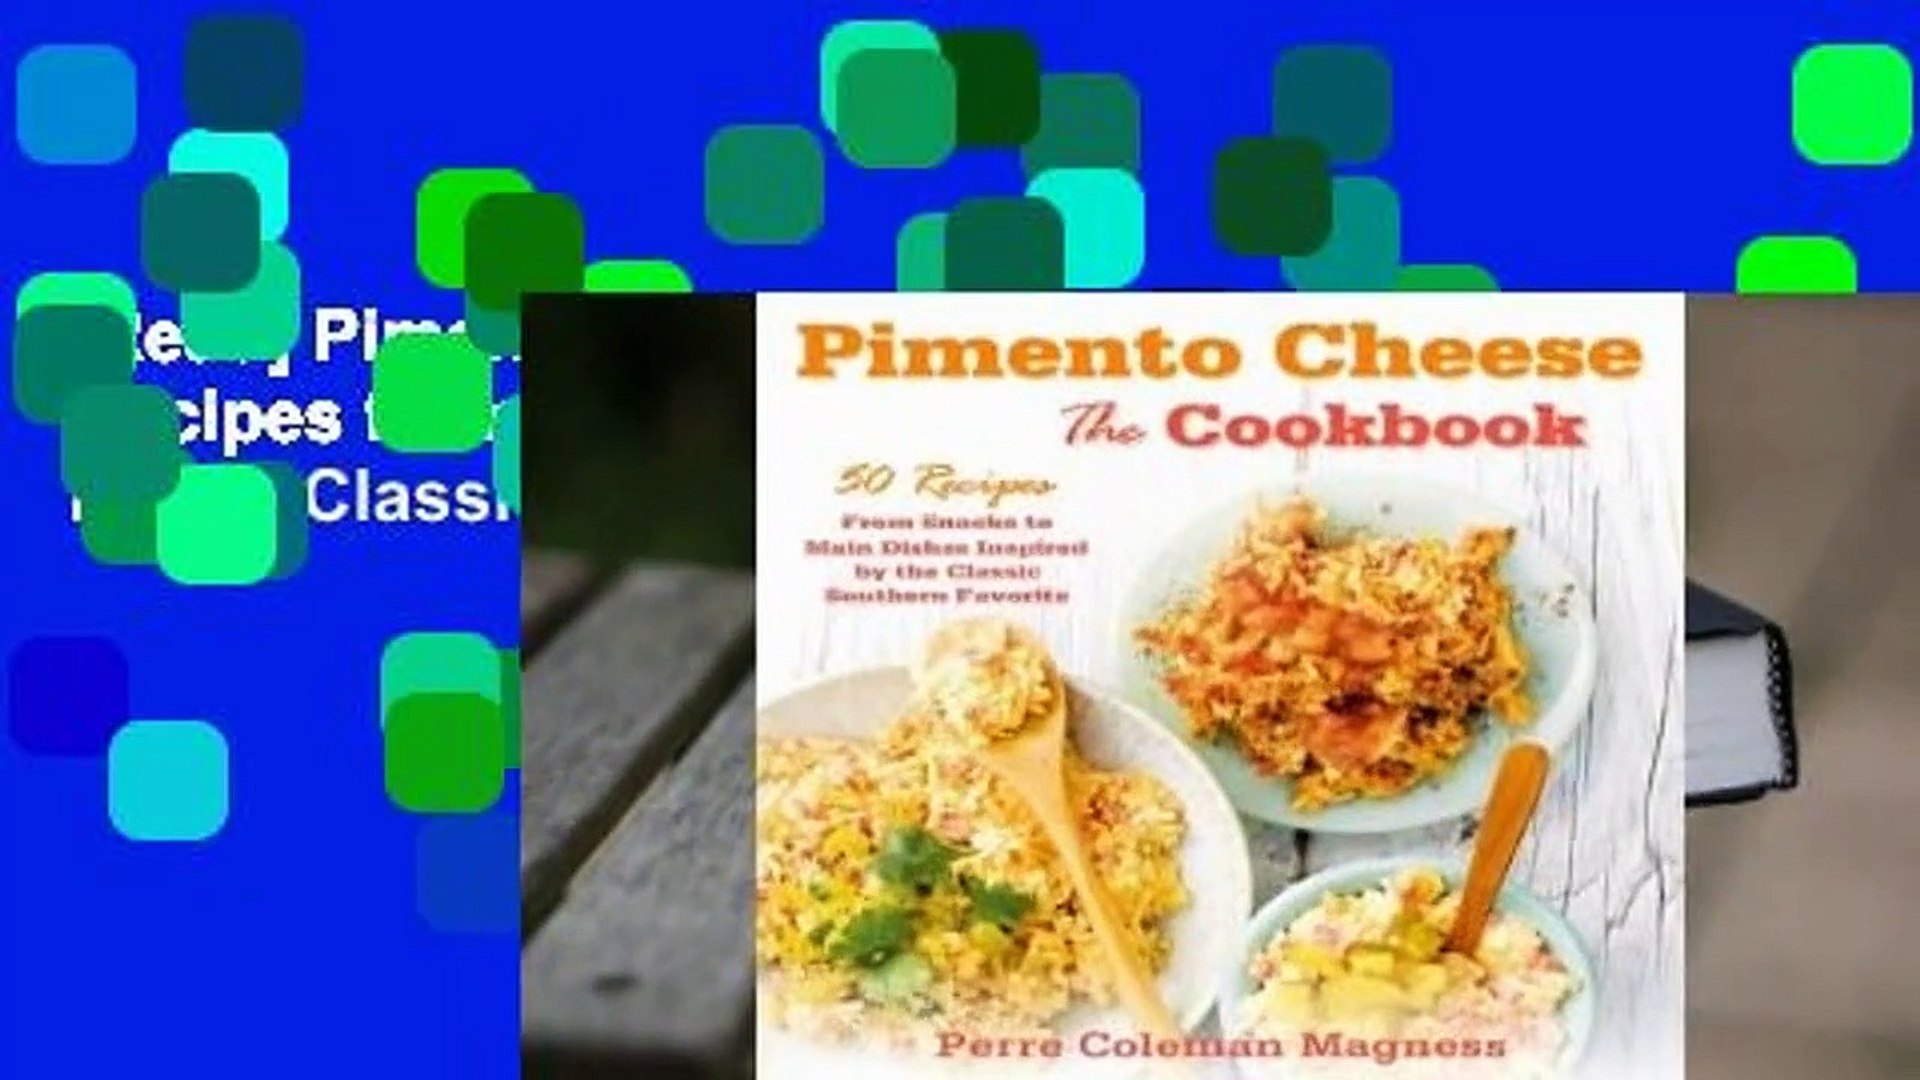 [Read] Pimento Cheese: The Cookbook: 50 Recipes from Snacks to Main Dishes Inspired by the Classic